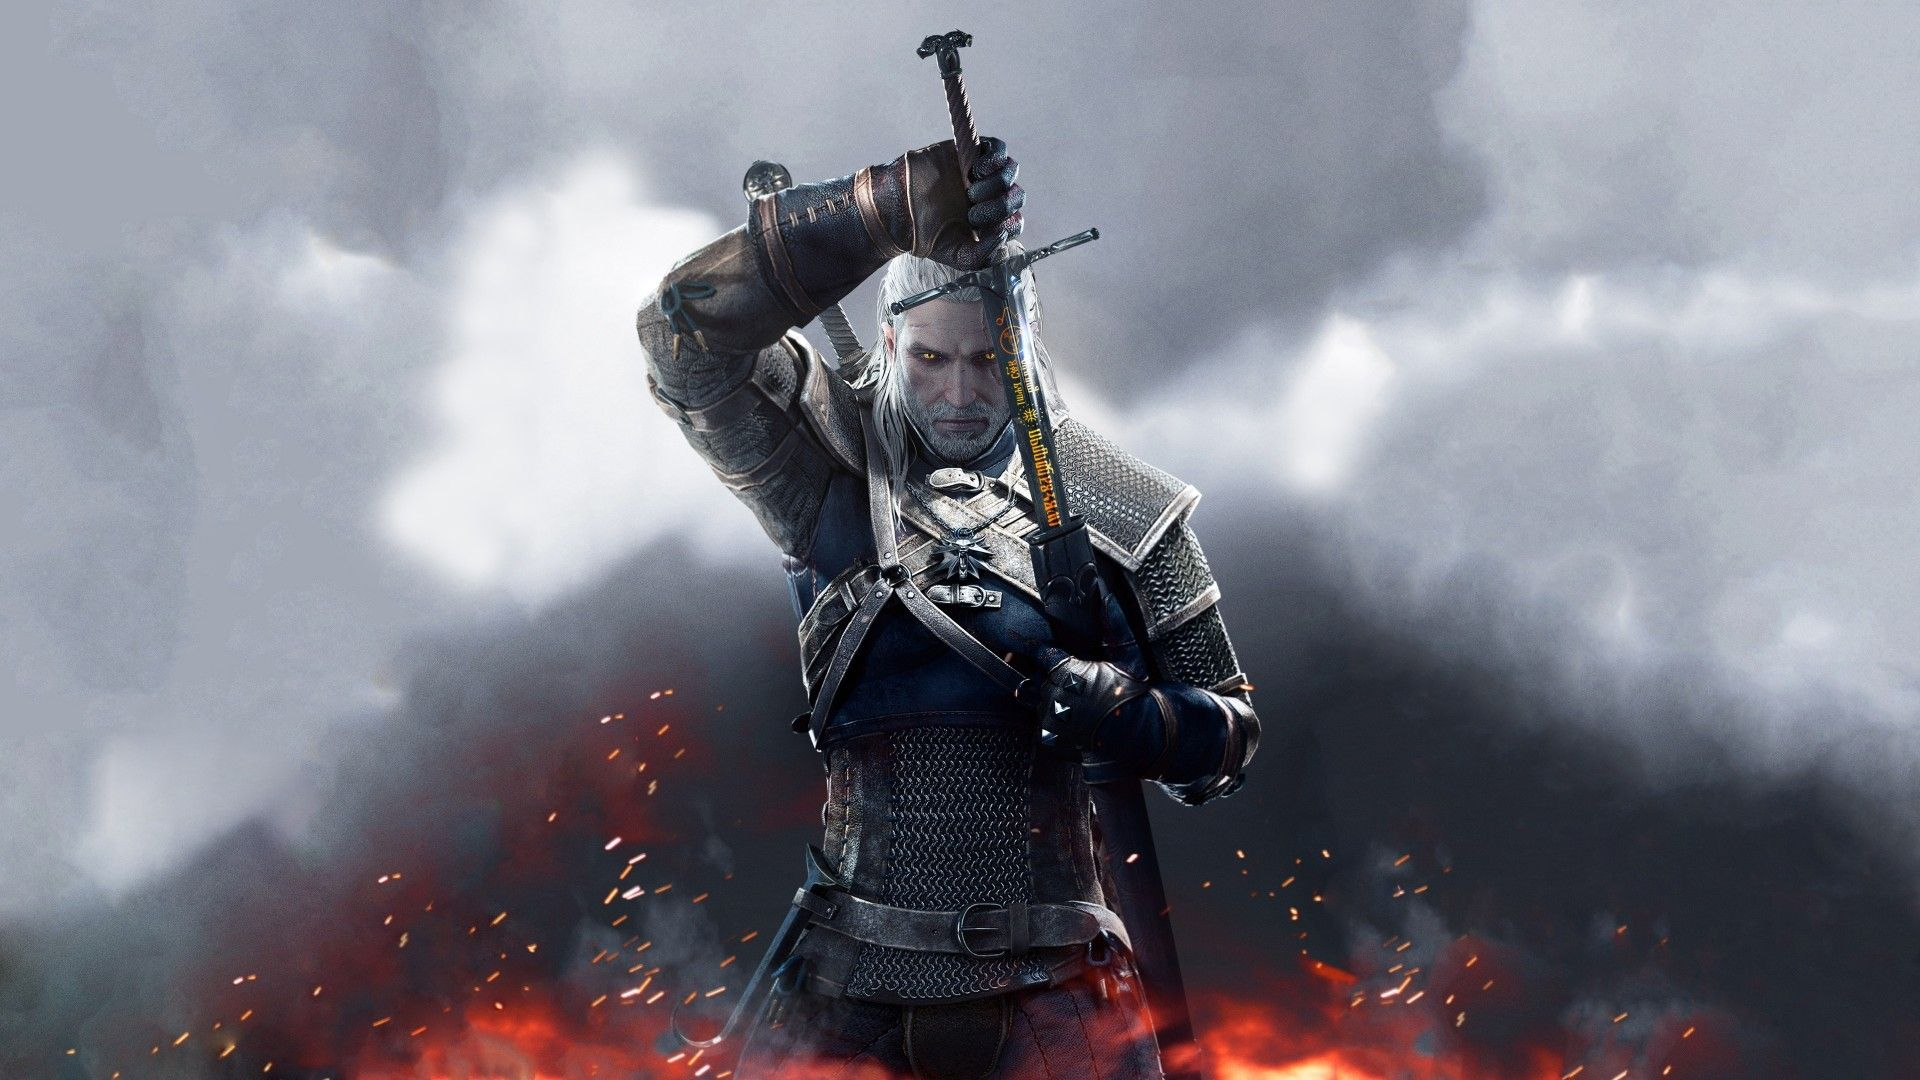 Wallpaper the witcher 3 wild hunt sword runes geralt